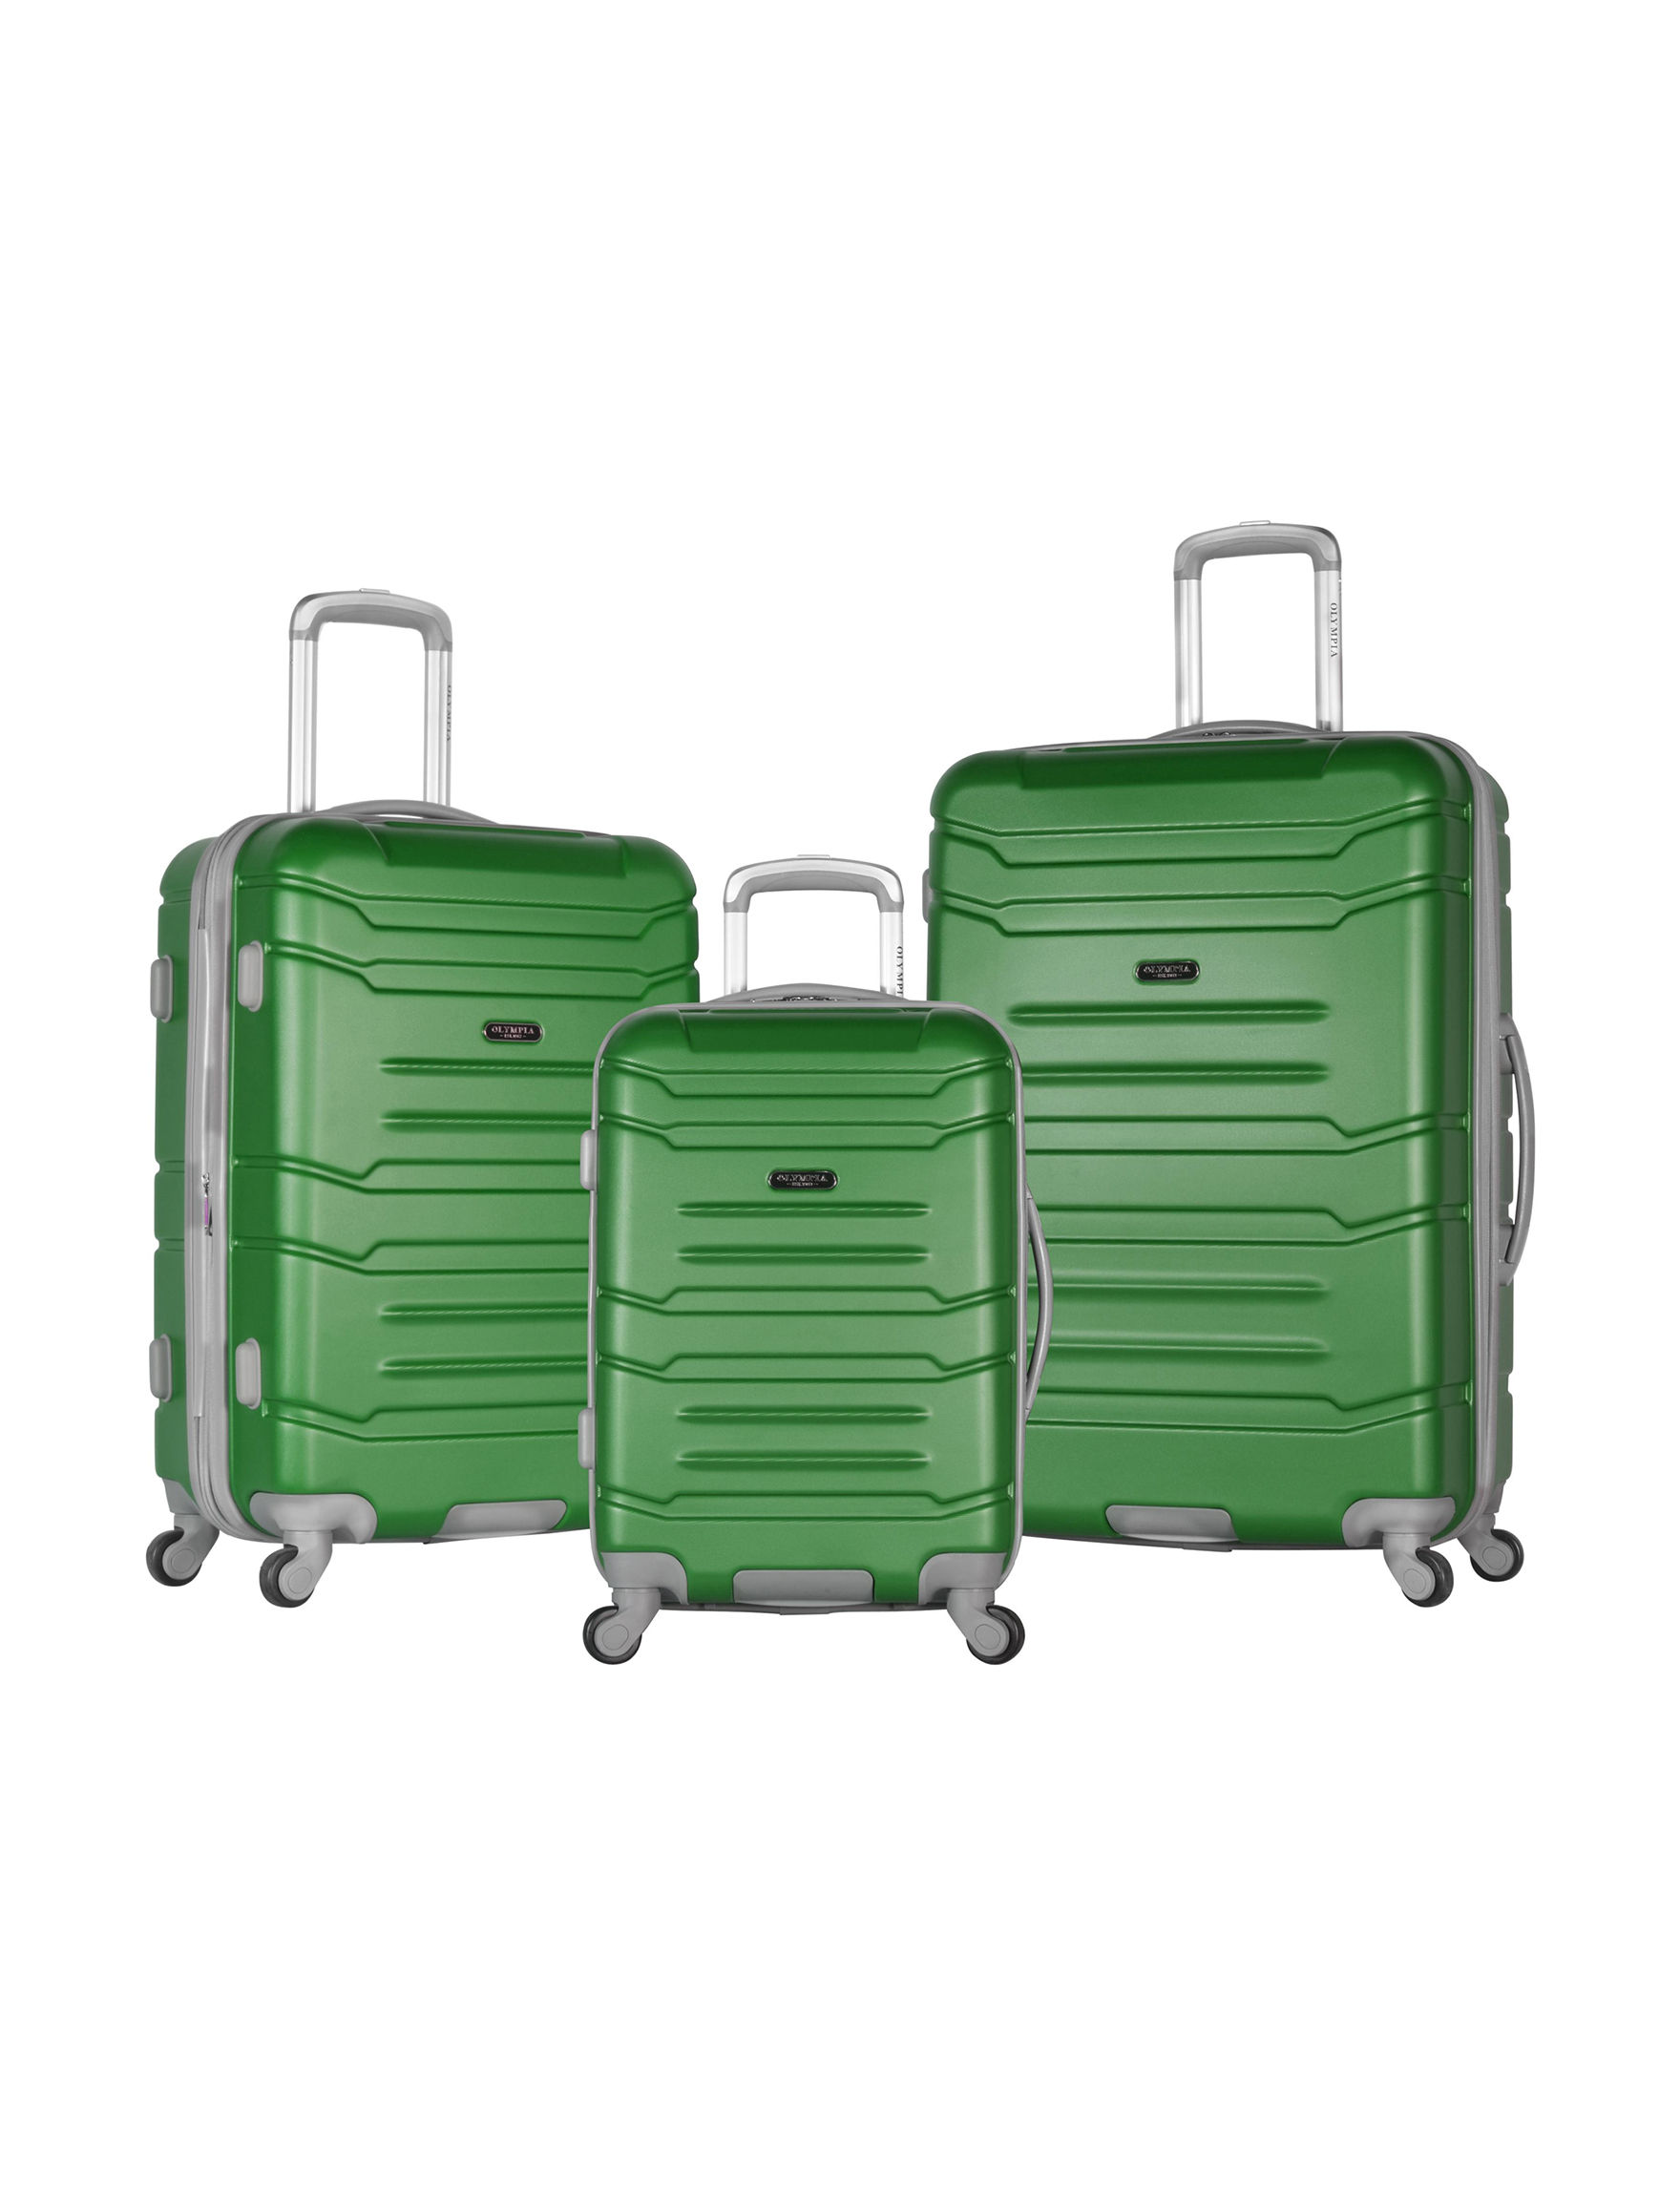 Olympia USA Green Luggage Sets